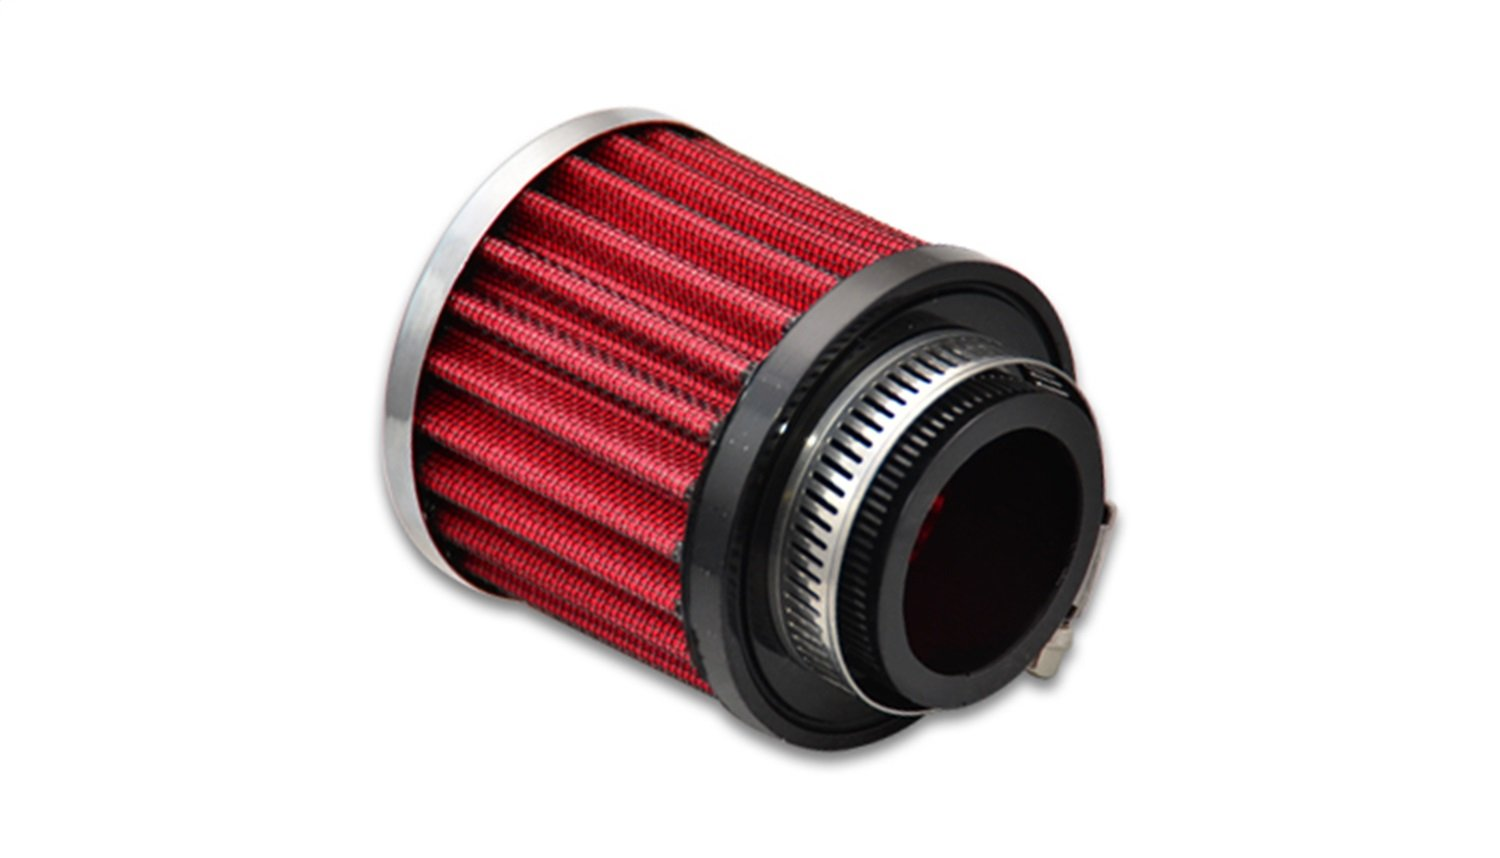 Vibrant Performance 2188 Crankcase Breather Filter w/Chrome Filter Cap 3 in. O.D. 3 in. Tall 1.5 in. I.D. Crankcase Breather Filter w/Chrome Filter Cap